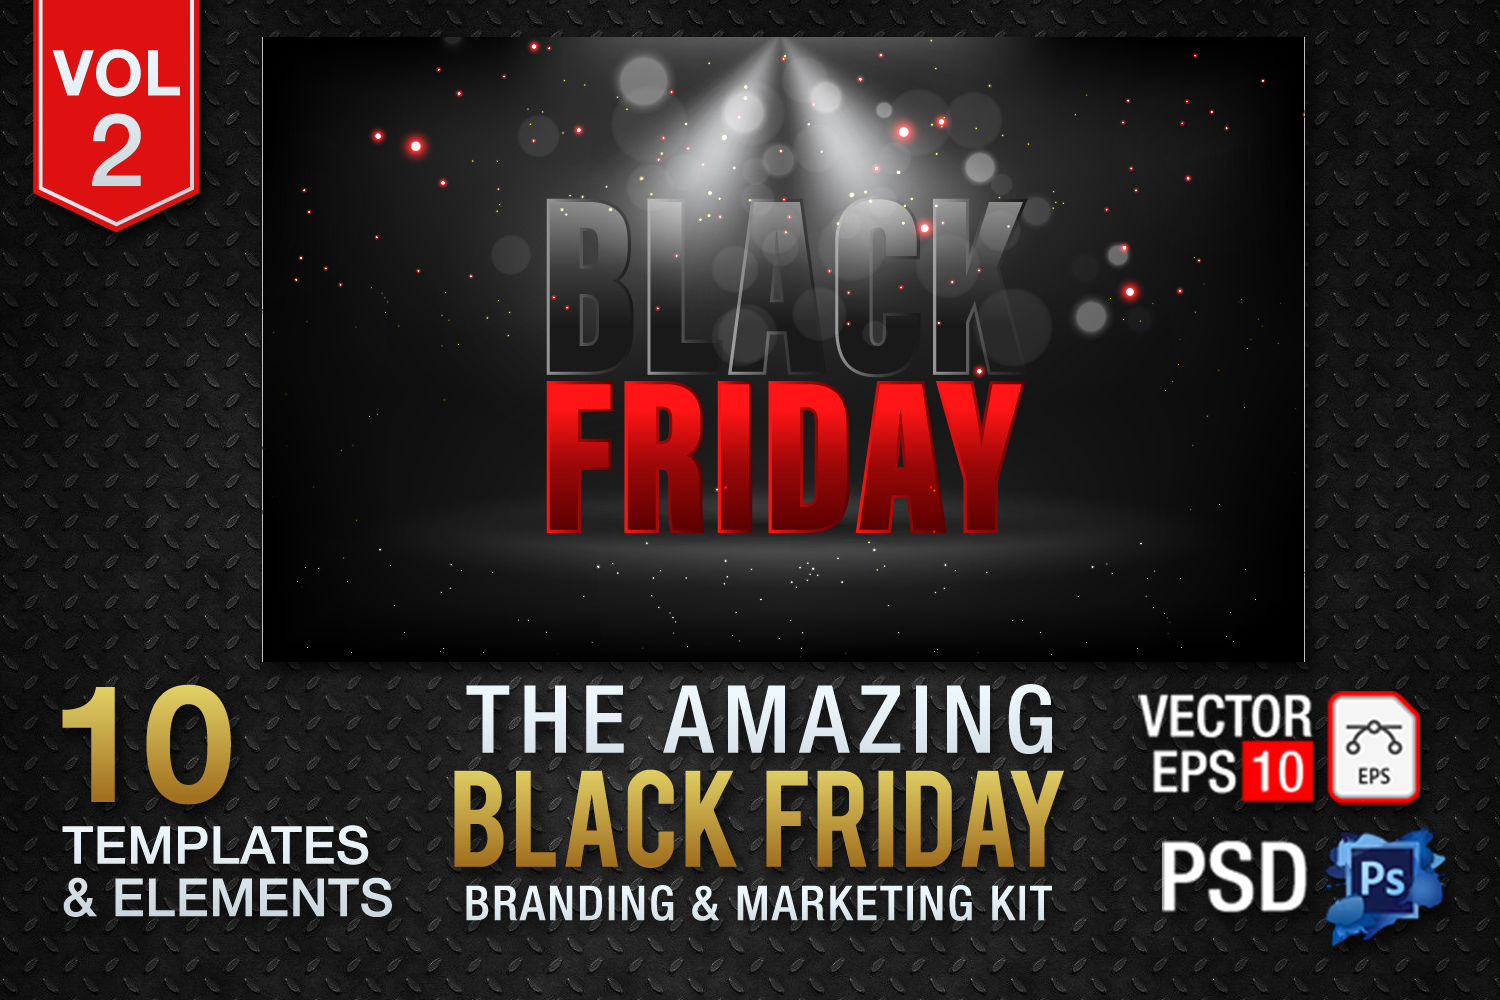 Black Friday Templates Vol 2 example image 1